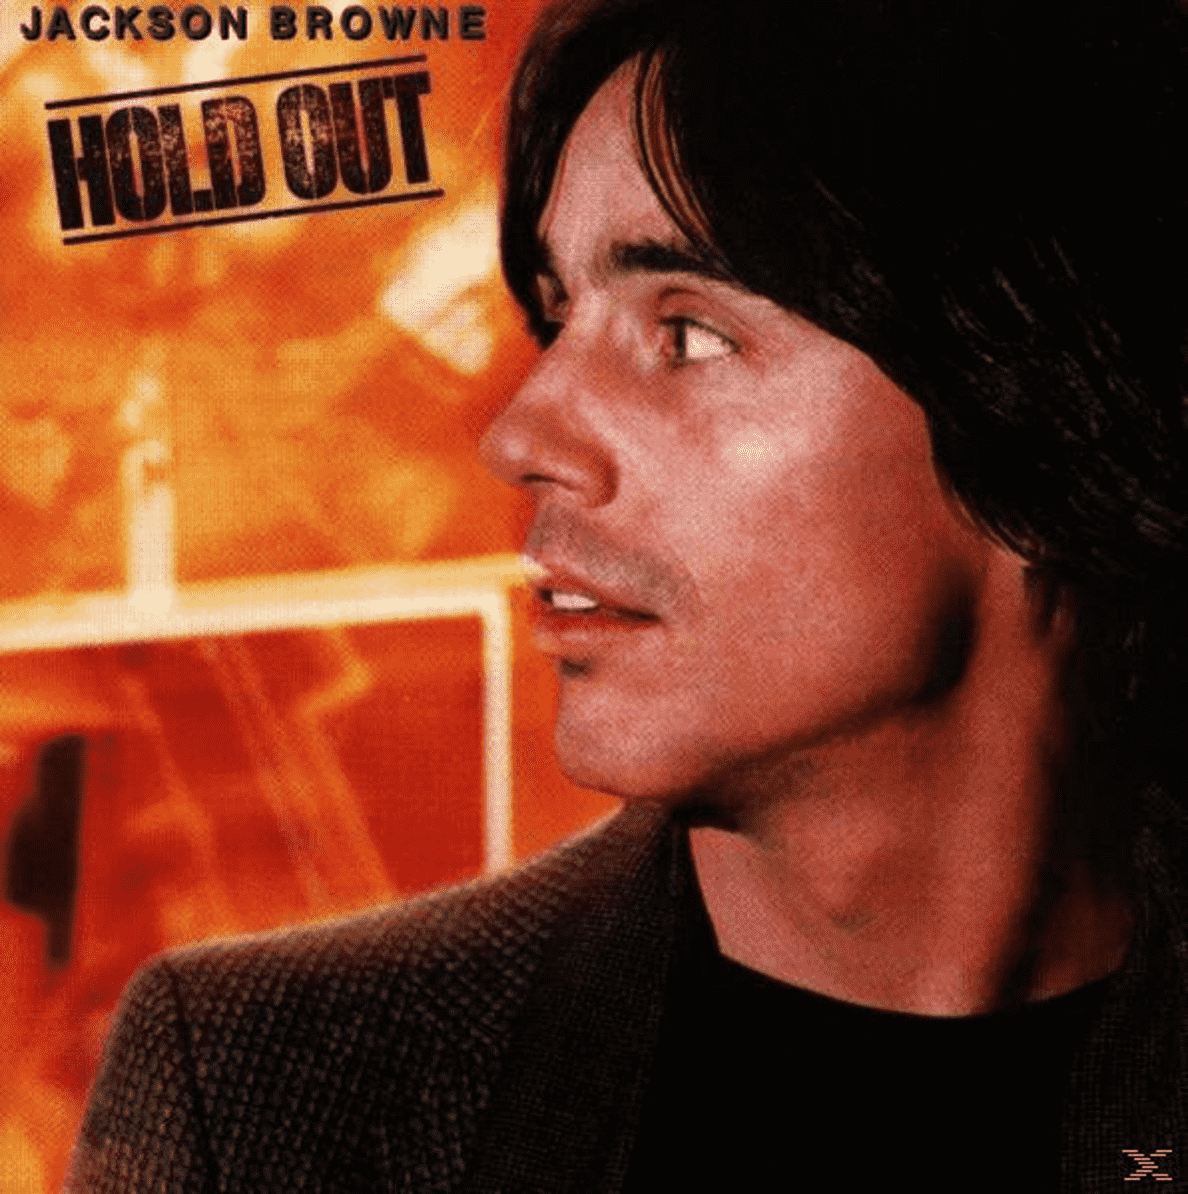 Jackson Browne - Hold Out - (CD)